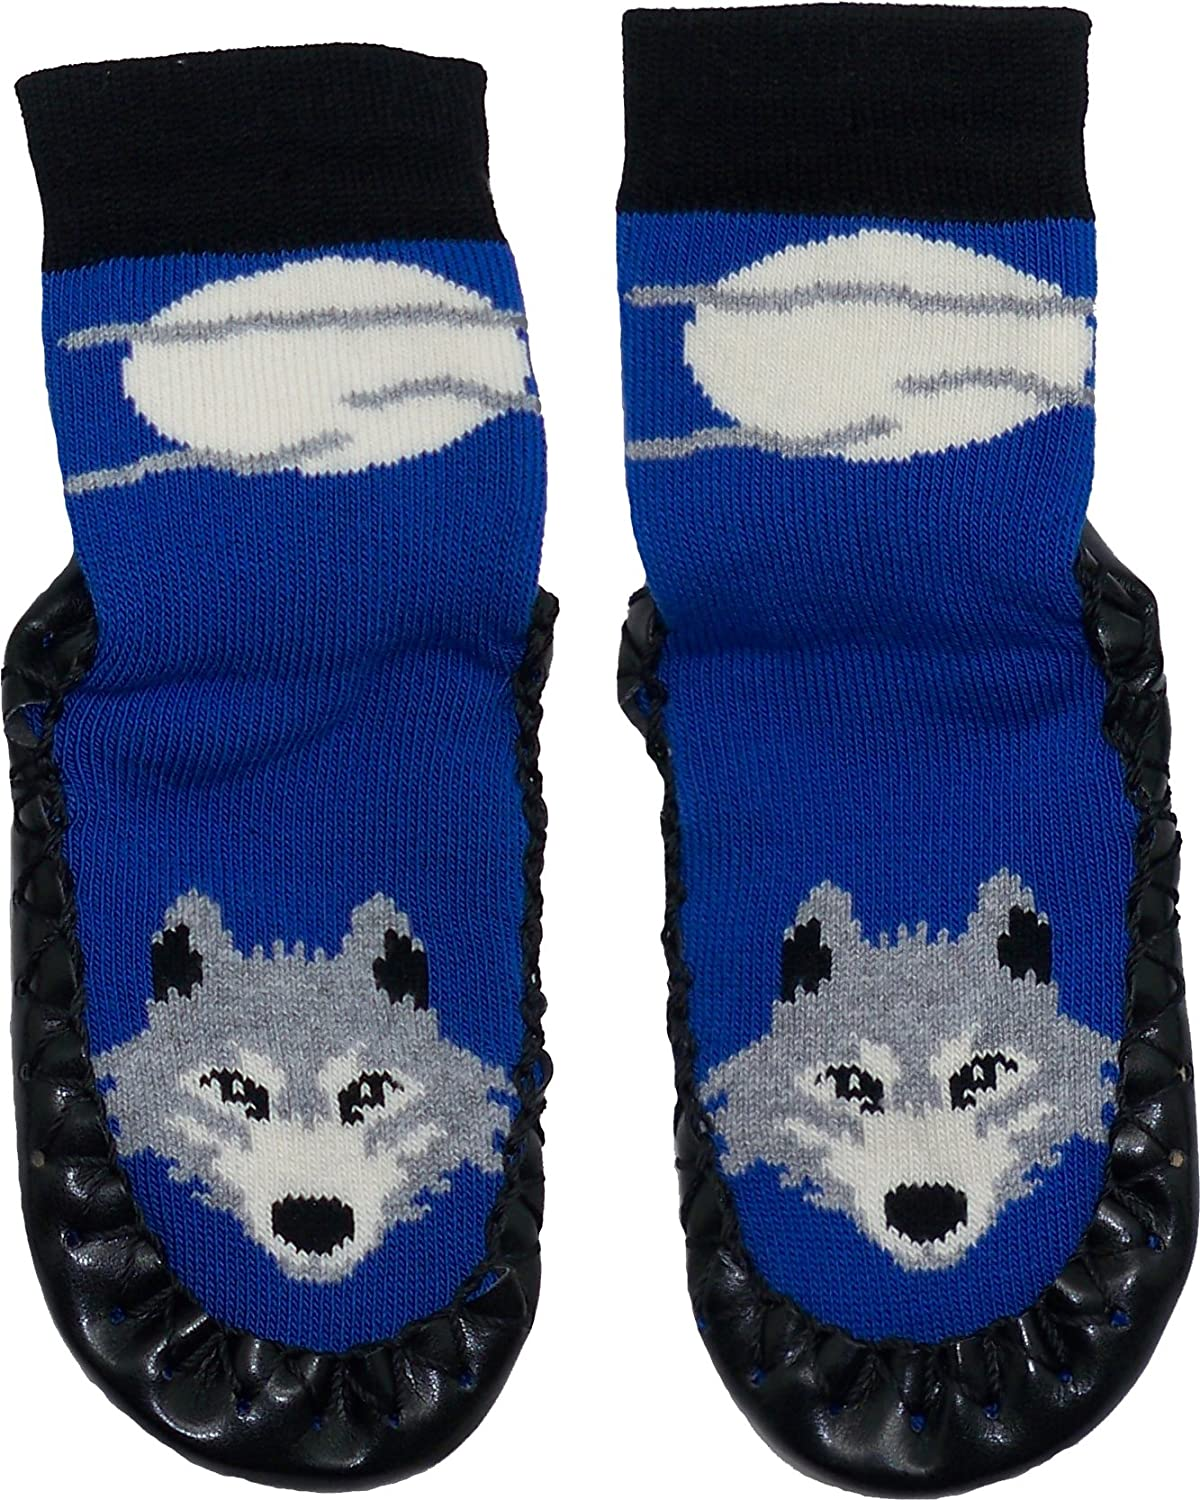 Home Footwear for Toddlers Boys Slipper Socks Konfetti Wolf Moon Kids Swedish Moccasins House Slippers Shoes Pre-Schoolers and Children